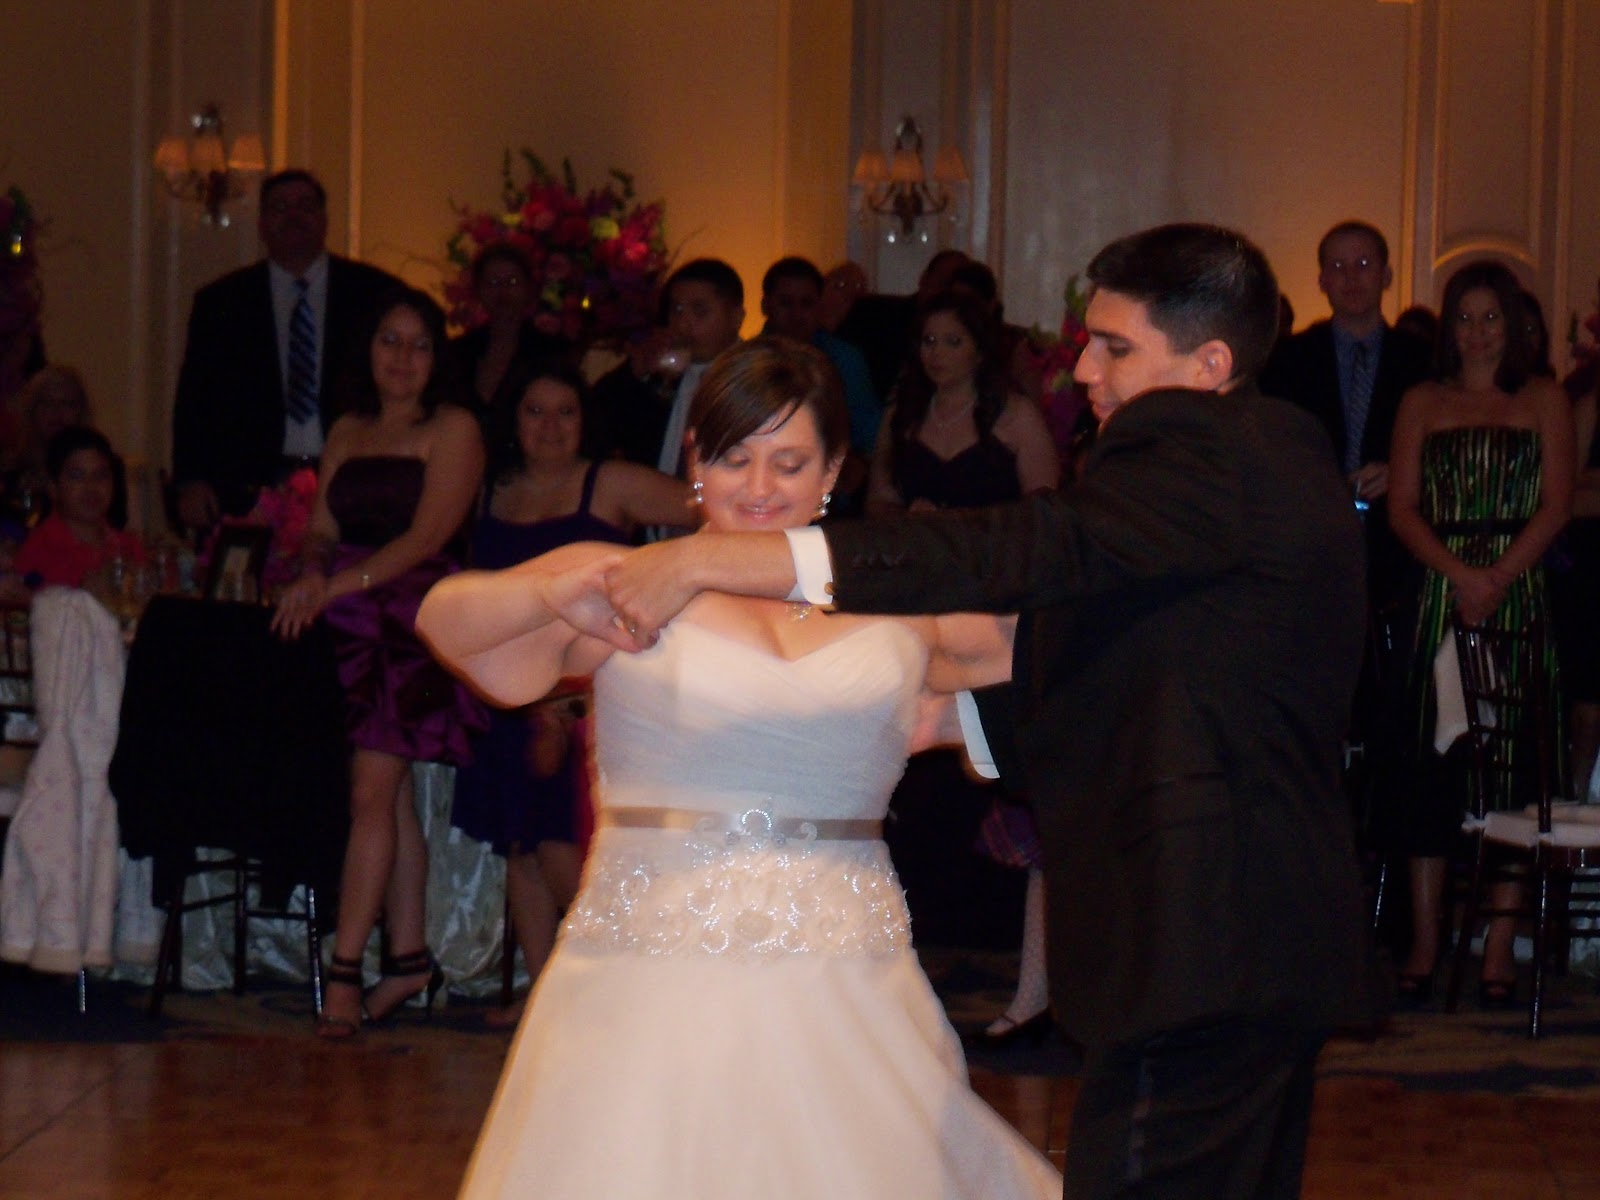 Megan Neal and Mark Suarez wedding - 100_8321.JPG